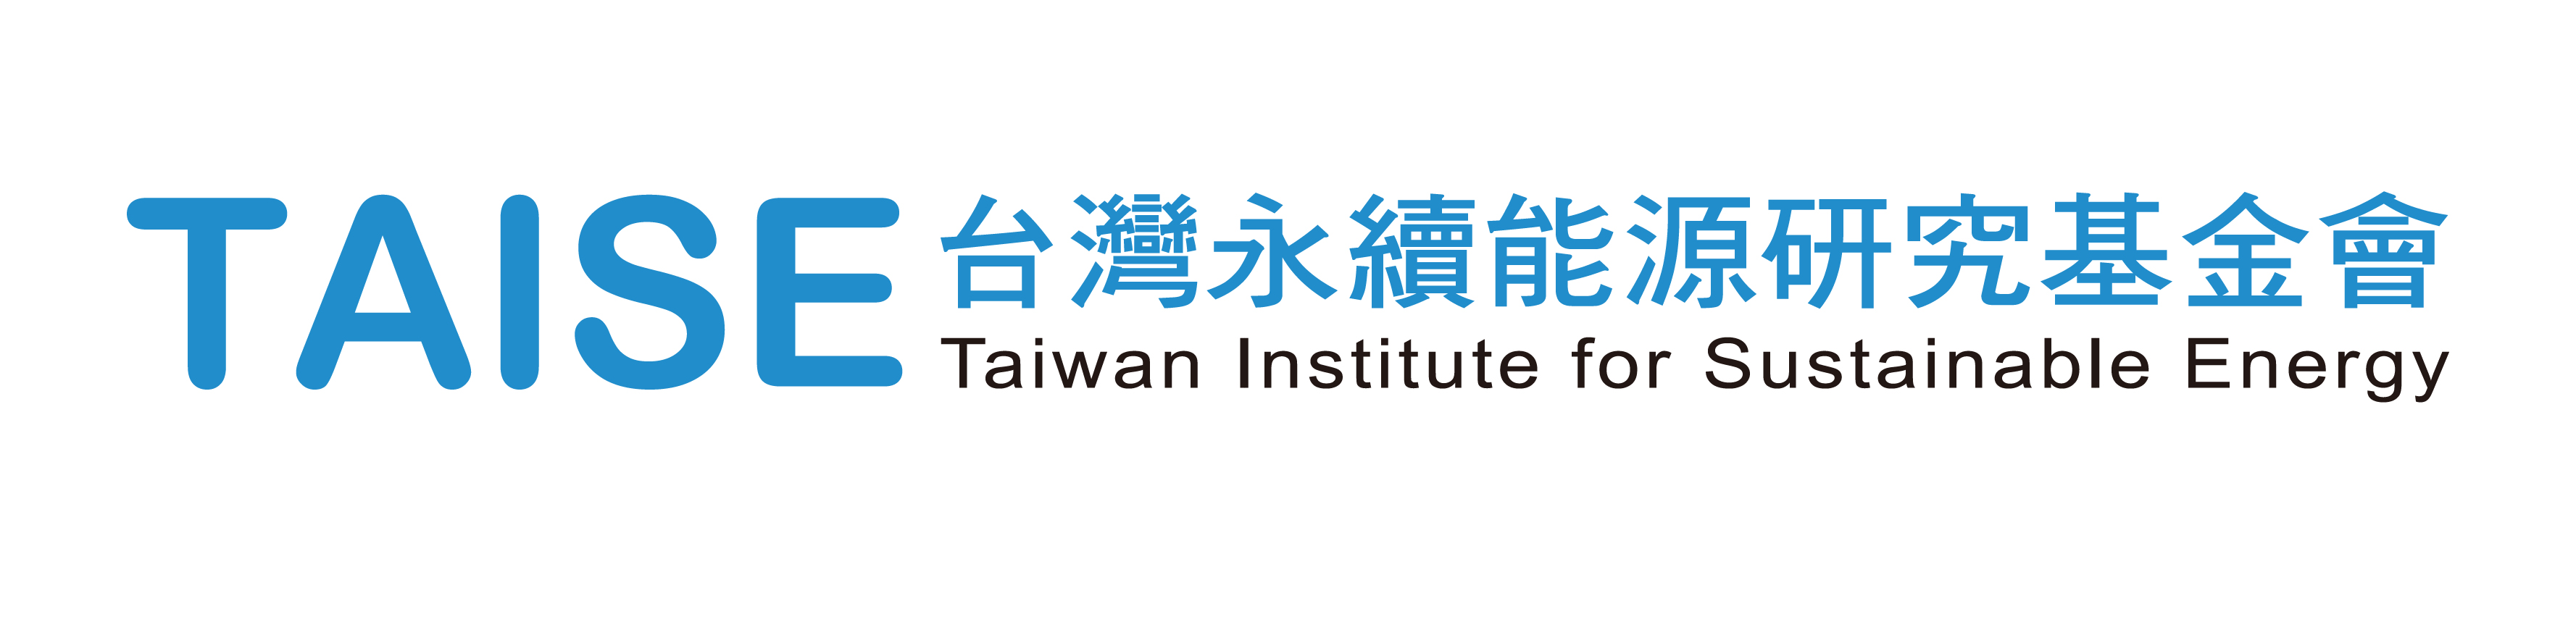 Taiwan Institute for Sustainable Energy (TAISE)